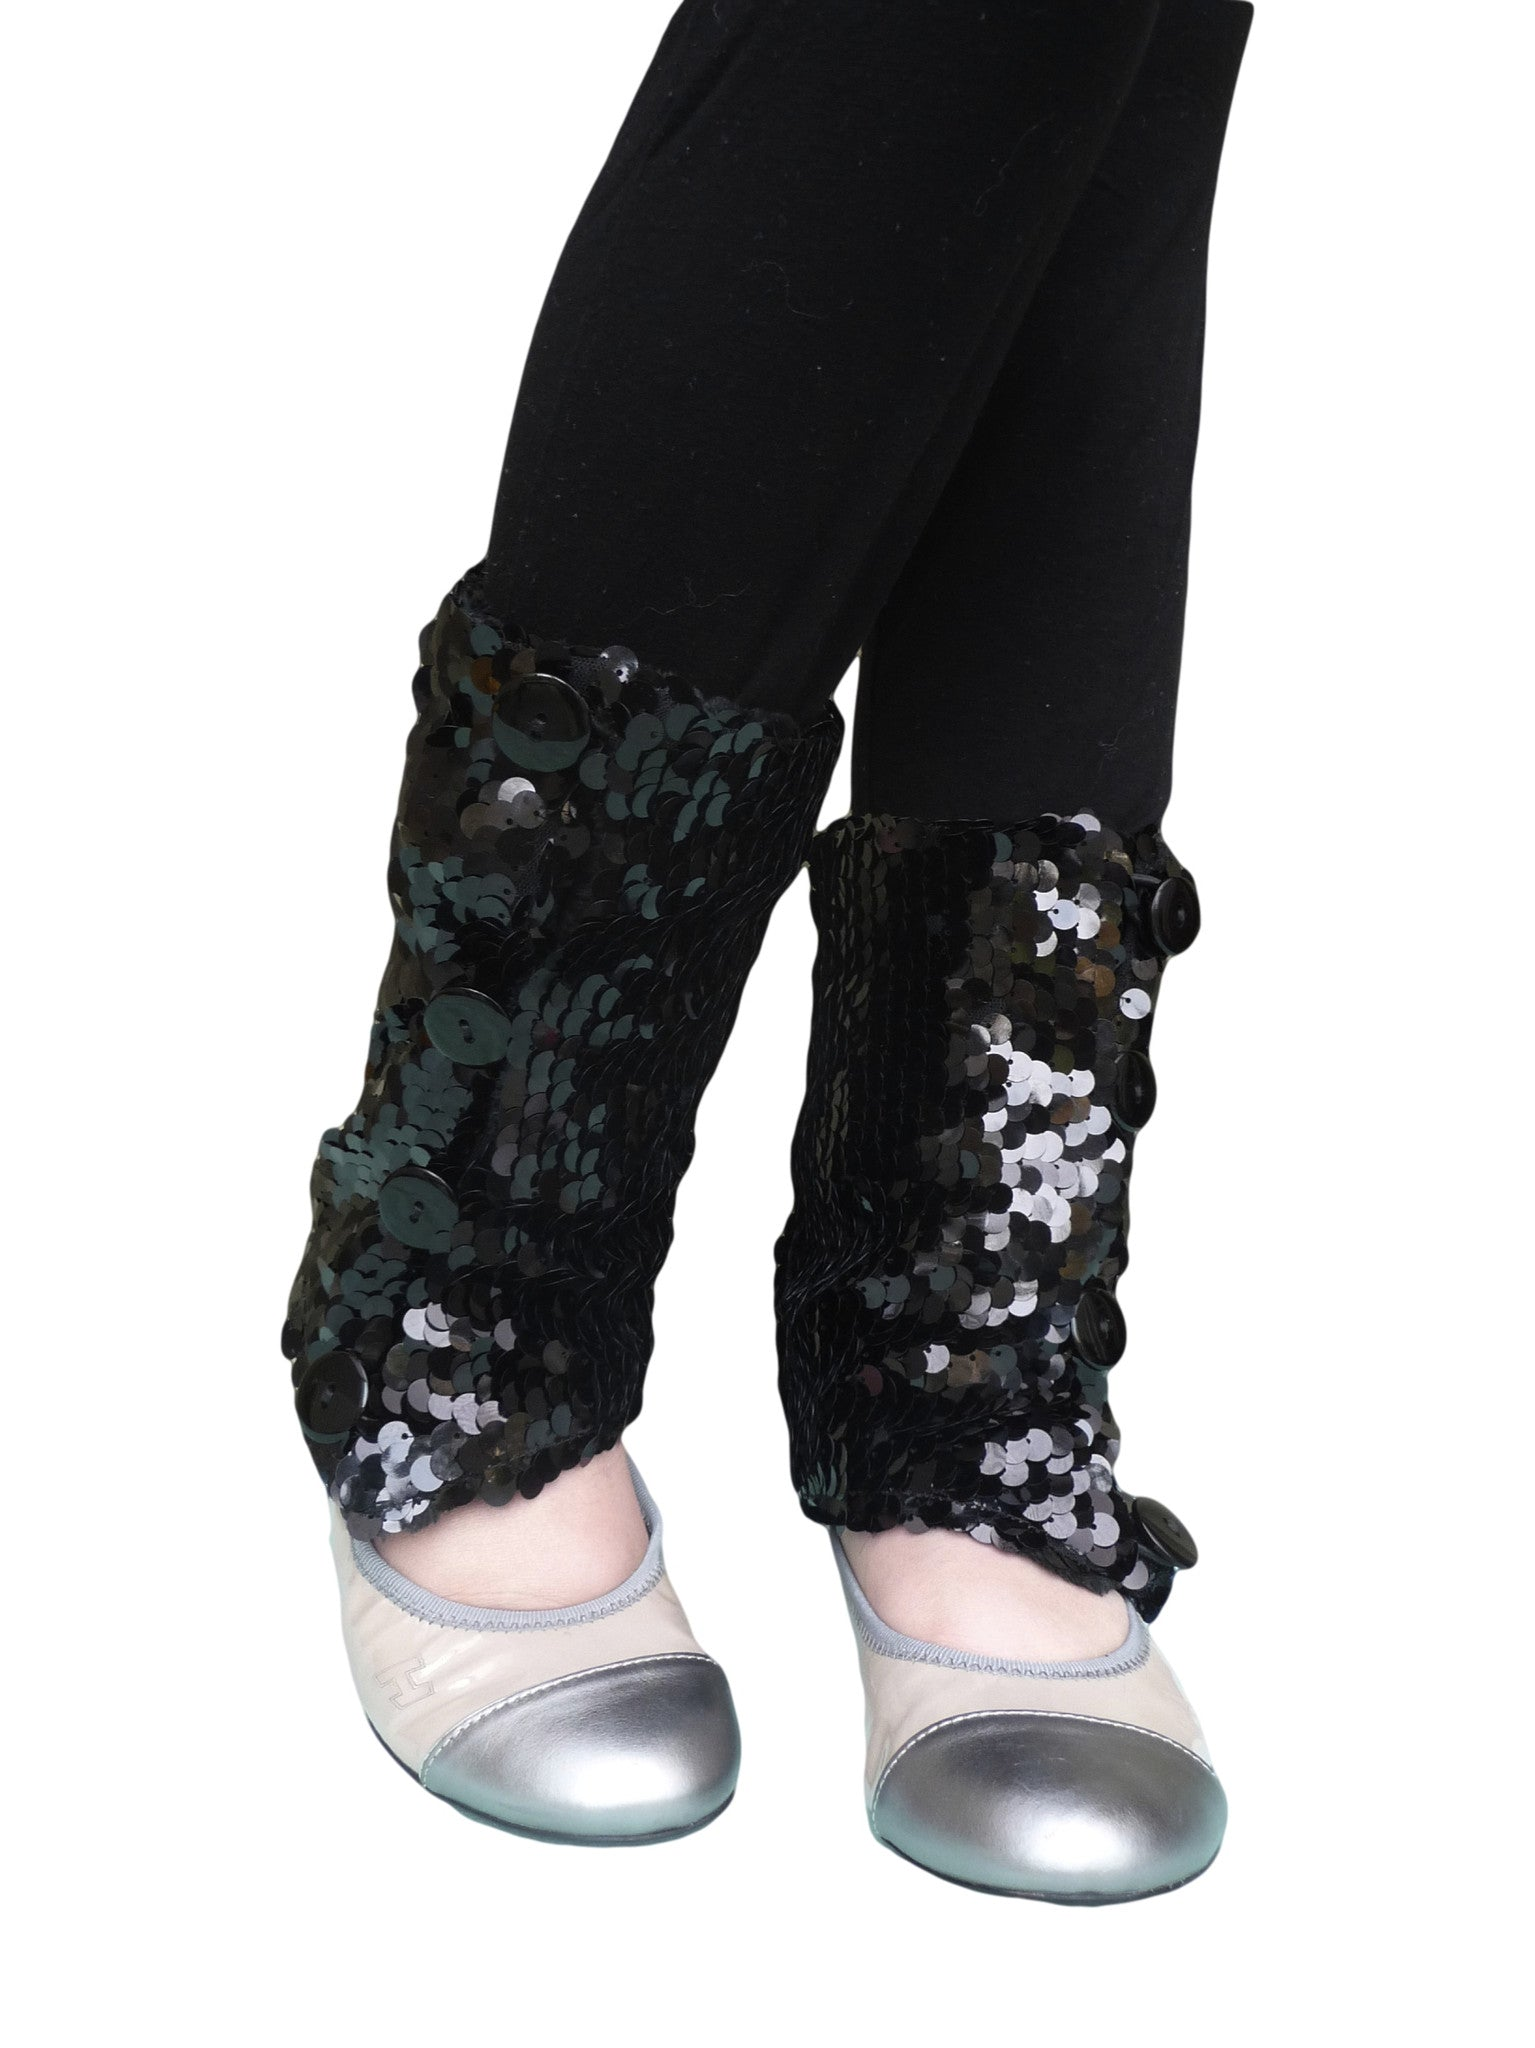 Black Sequins Leg Warmers